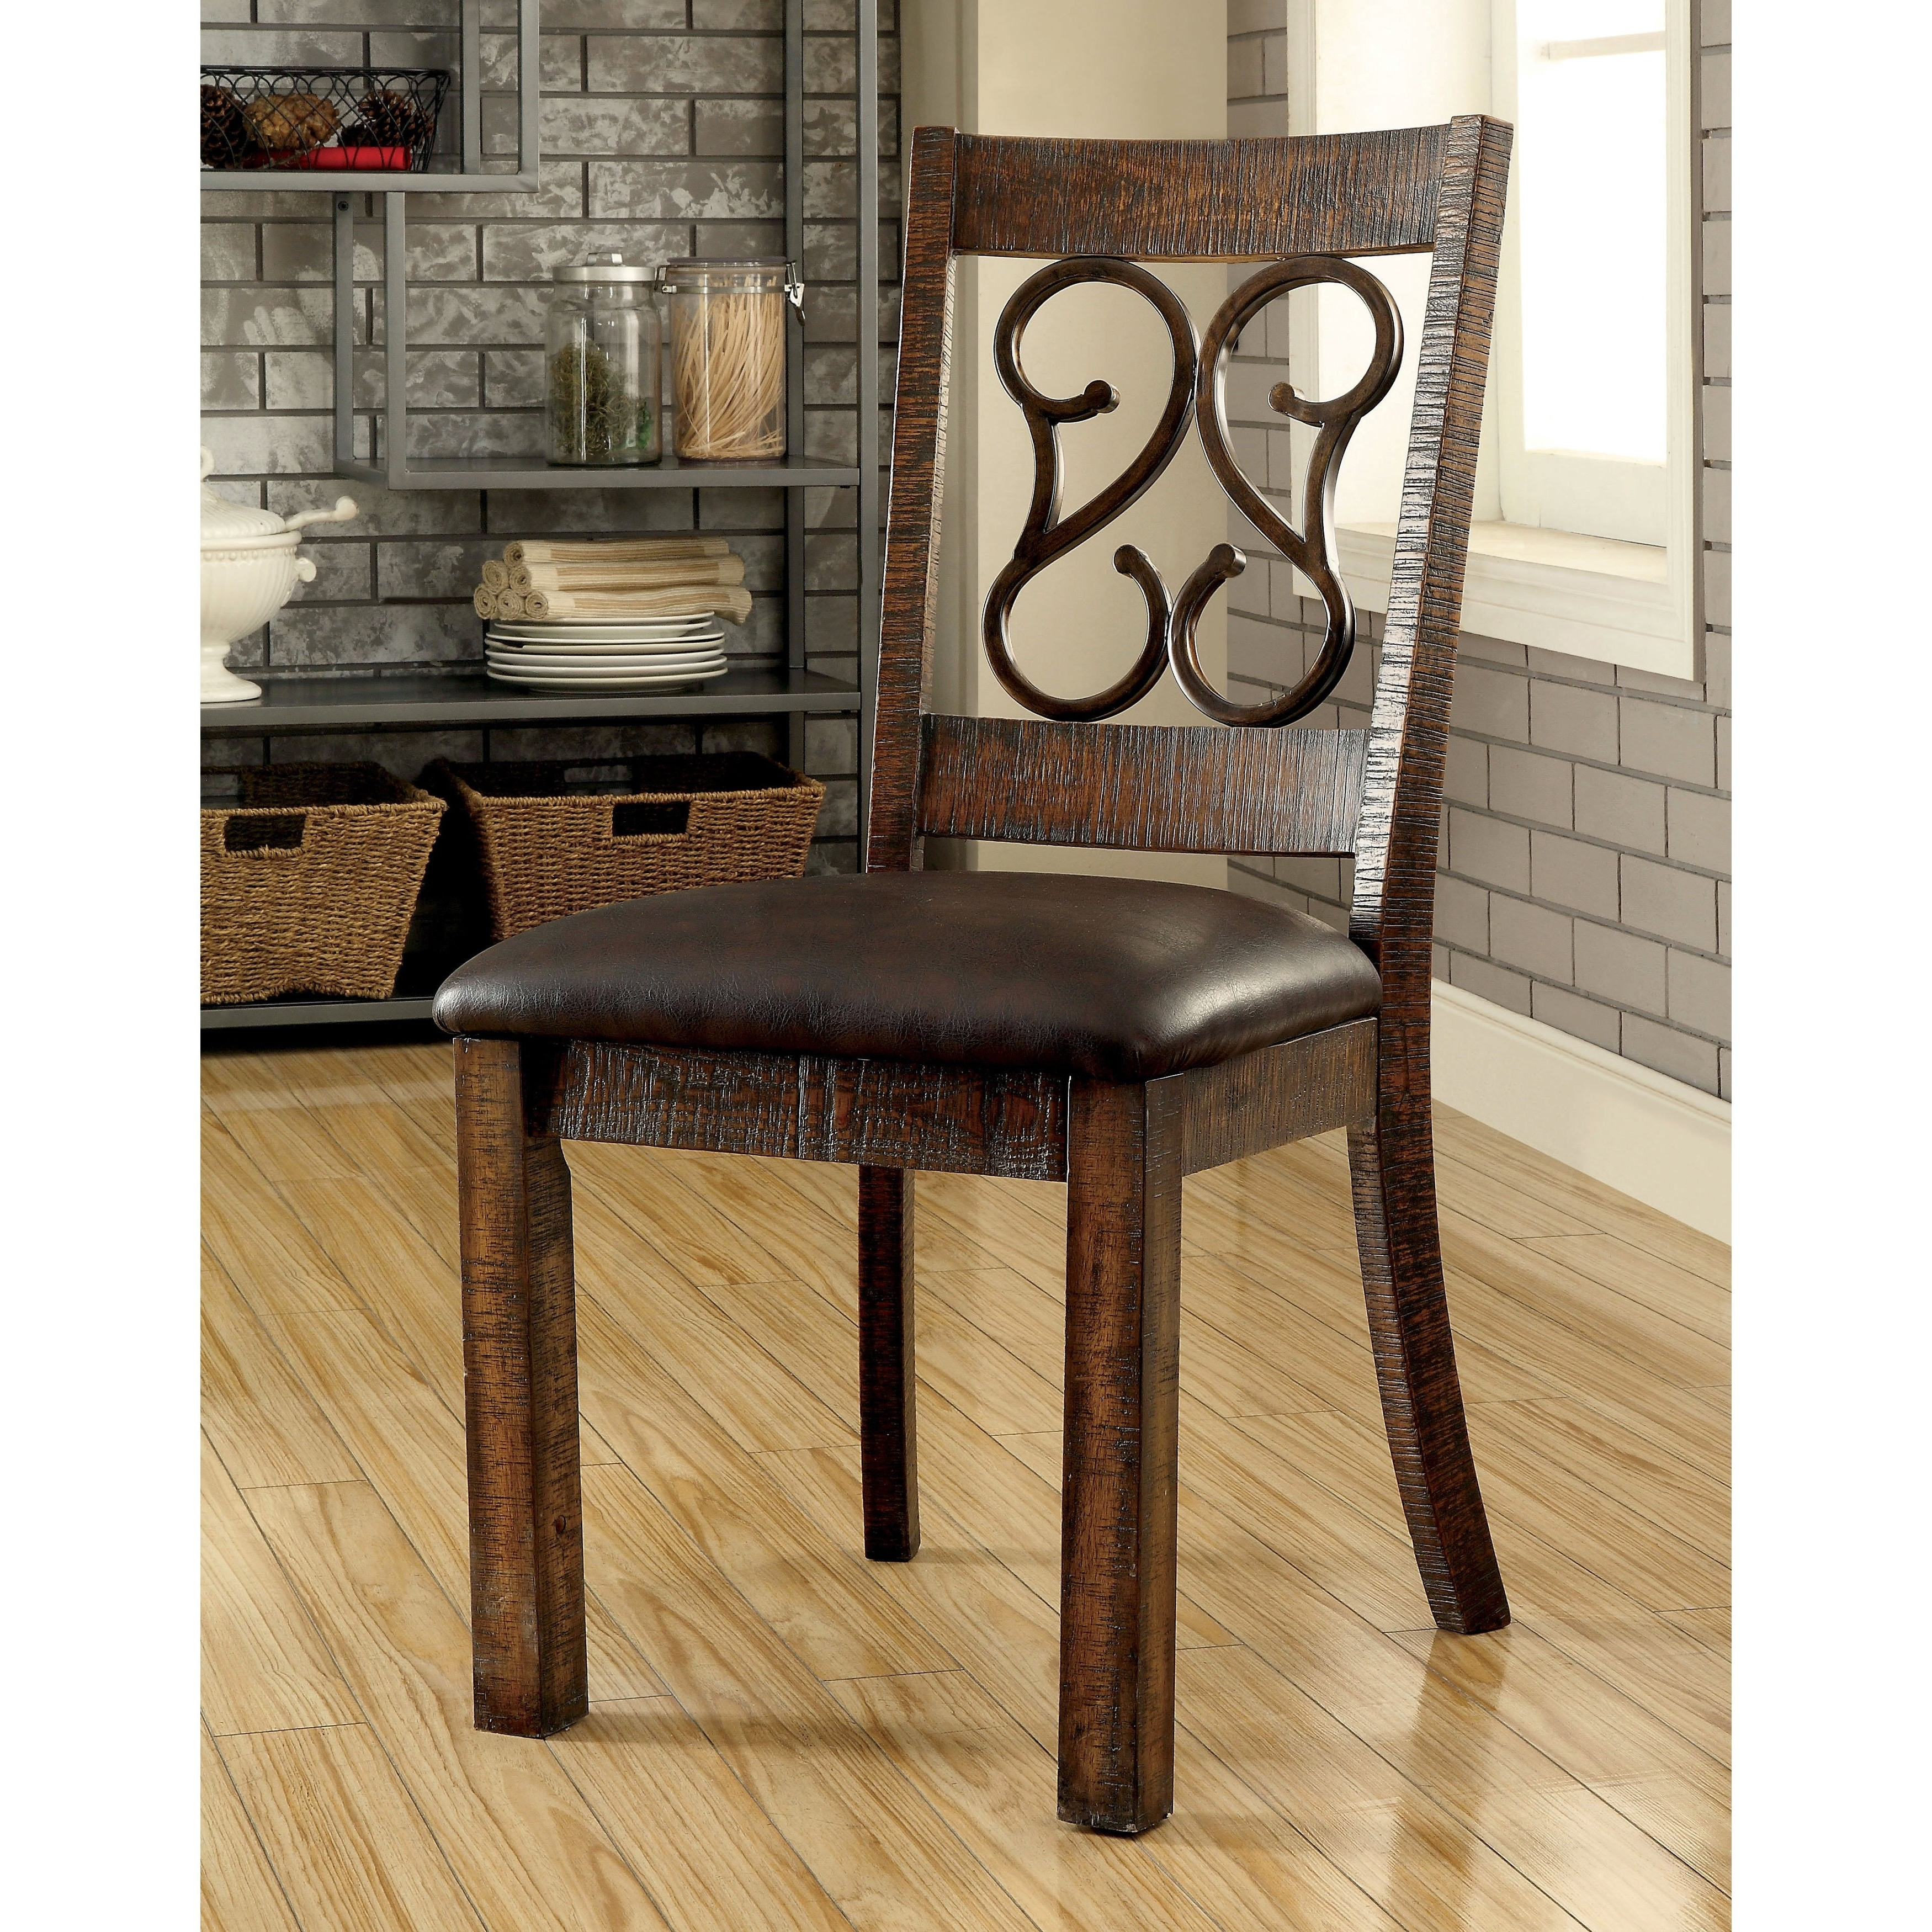 Most Recent Shop Furniture Of America Chester Traditional Scrolled Metal For Chester Dining Chairs (View 18 of 25)